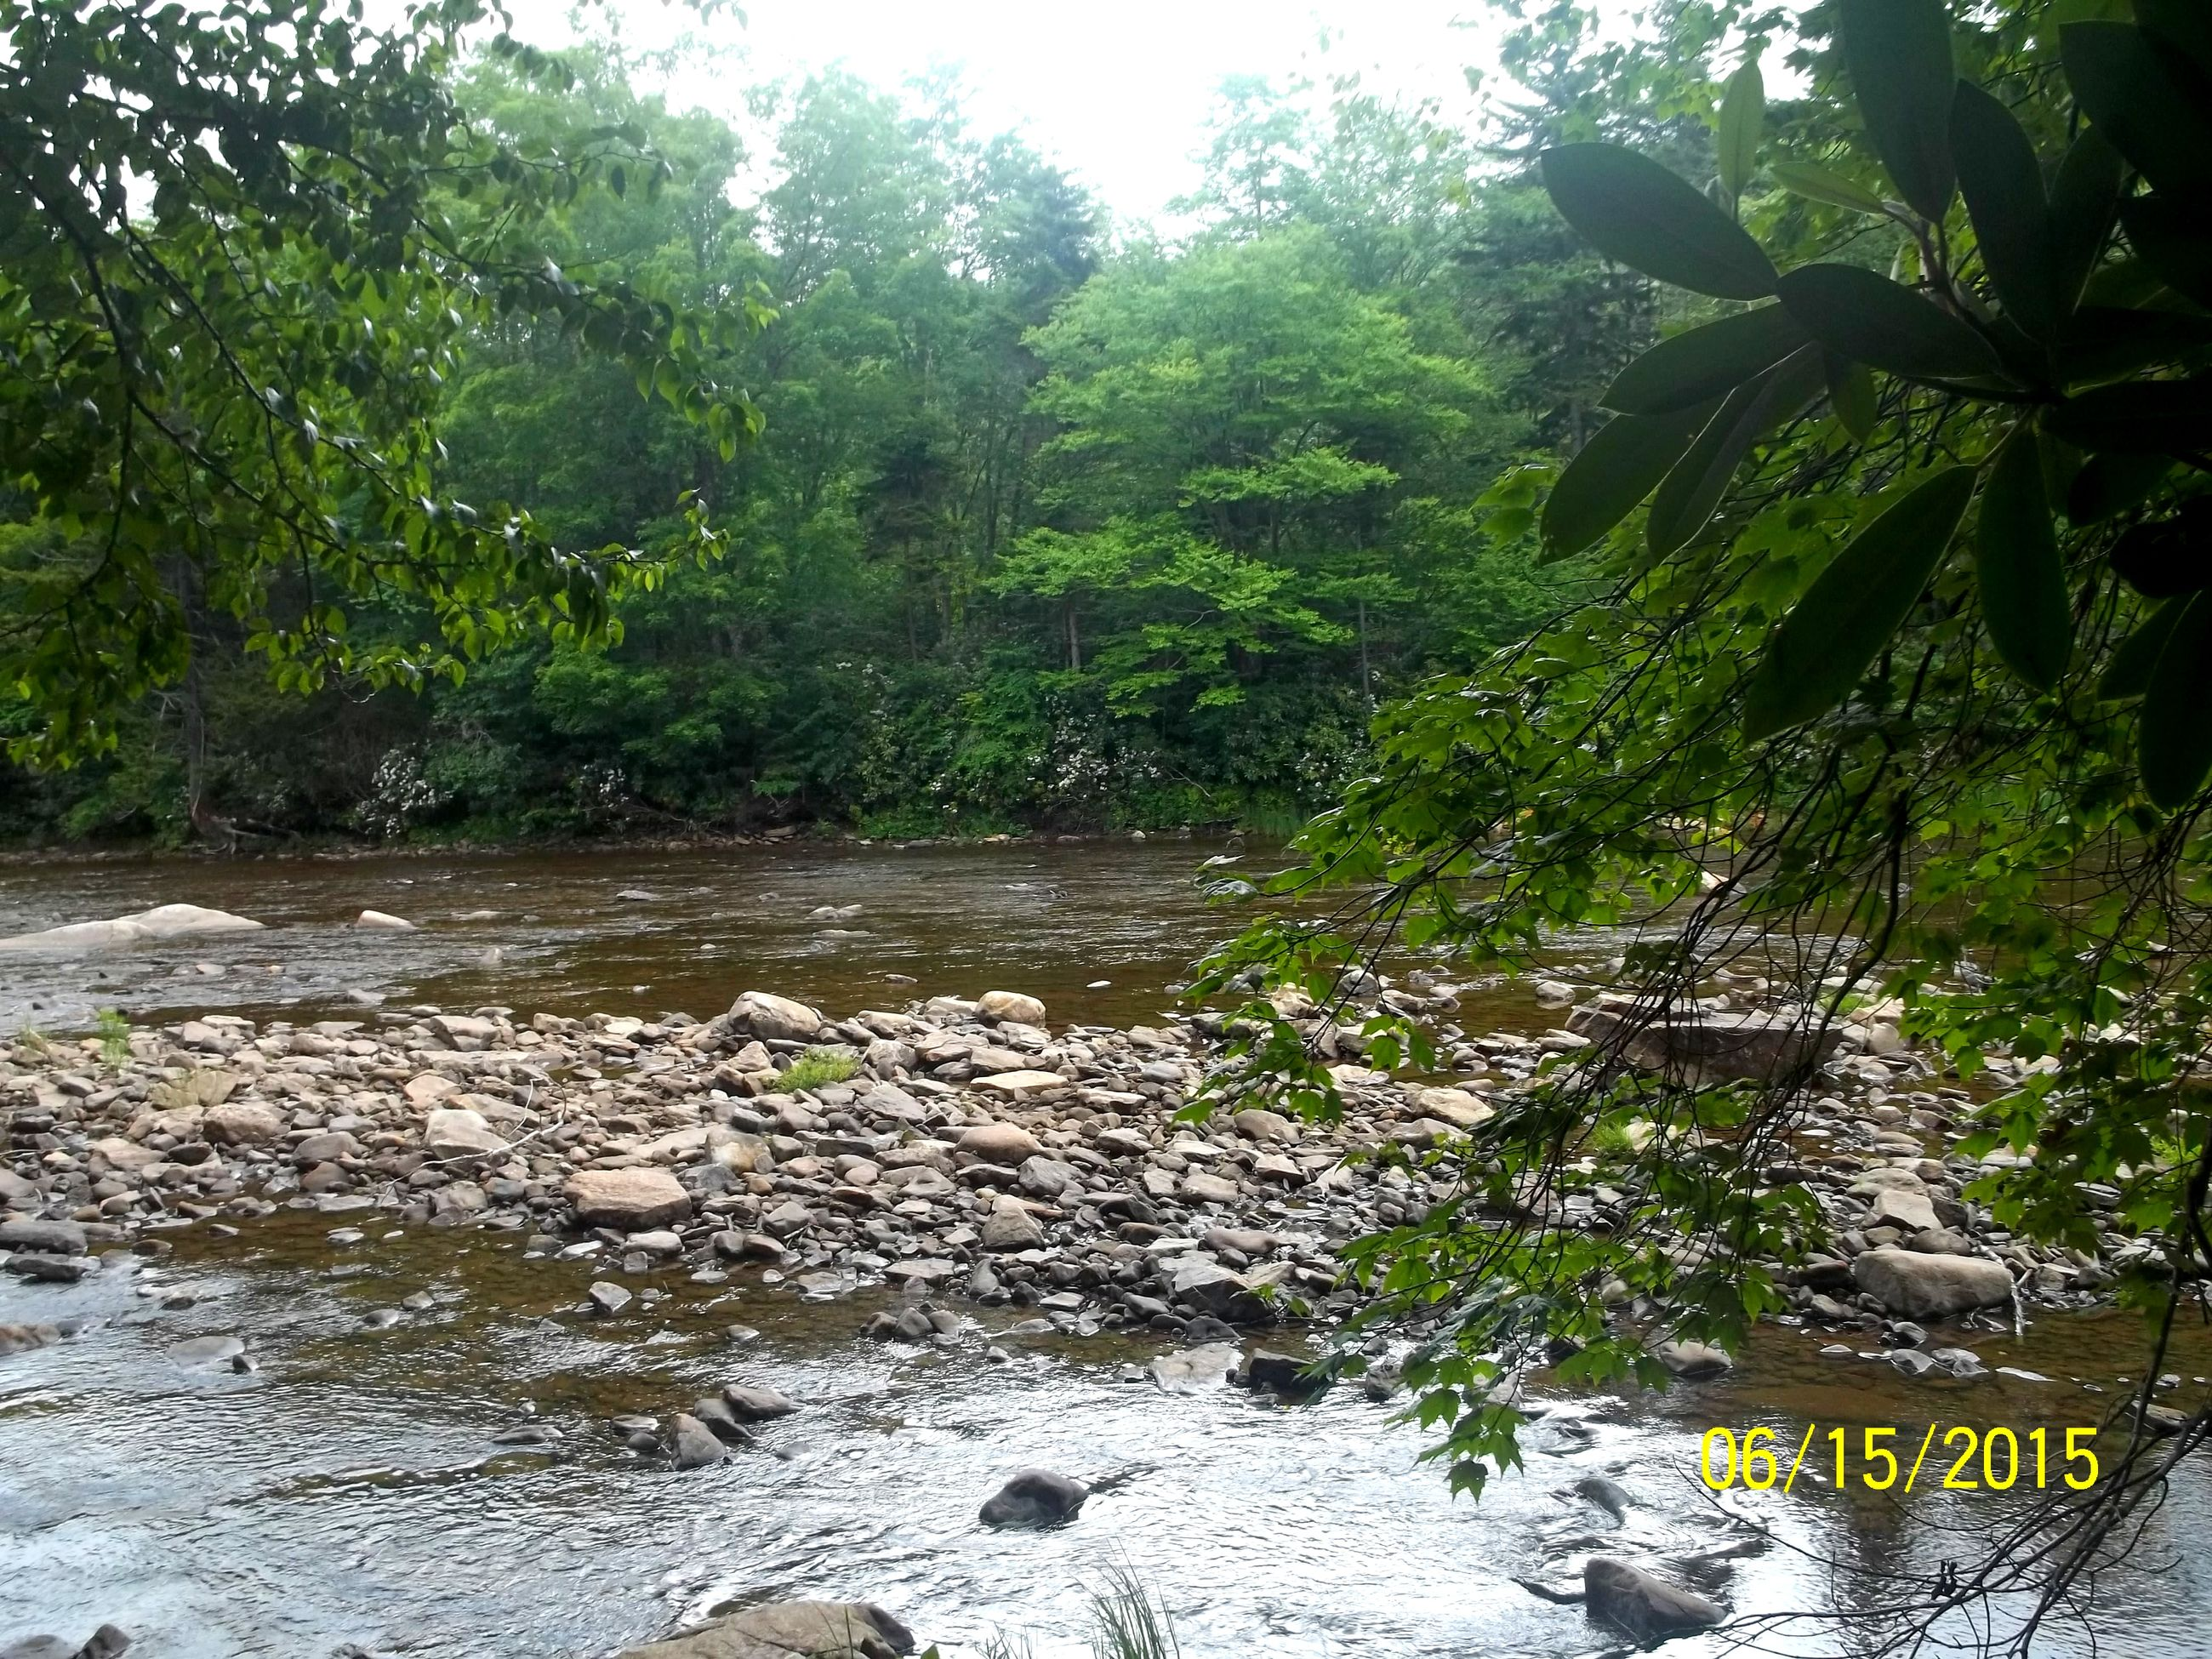 water, day, nature, growth, plant, no people, tree, rock - object, outdoors, tranquility, beauty in nature, animal themes